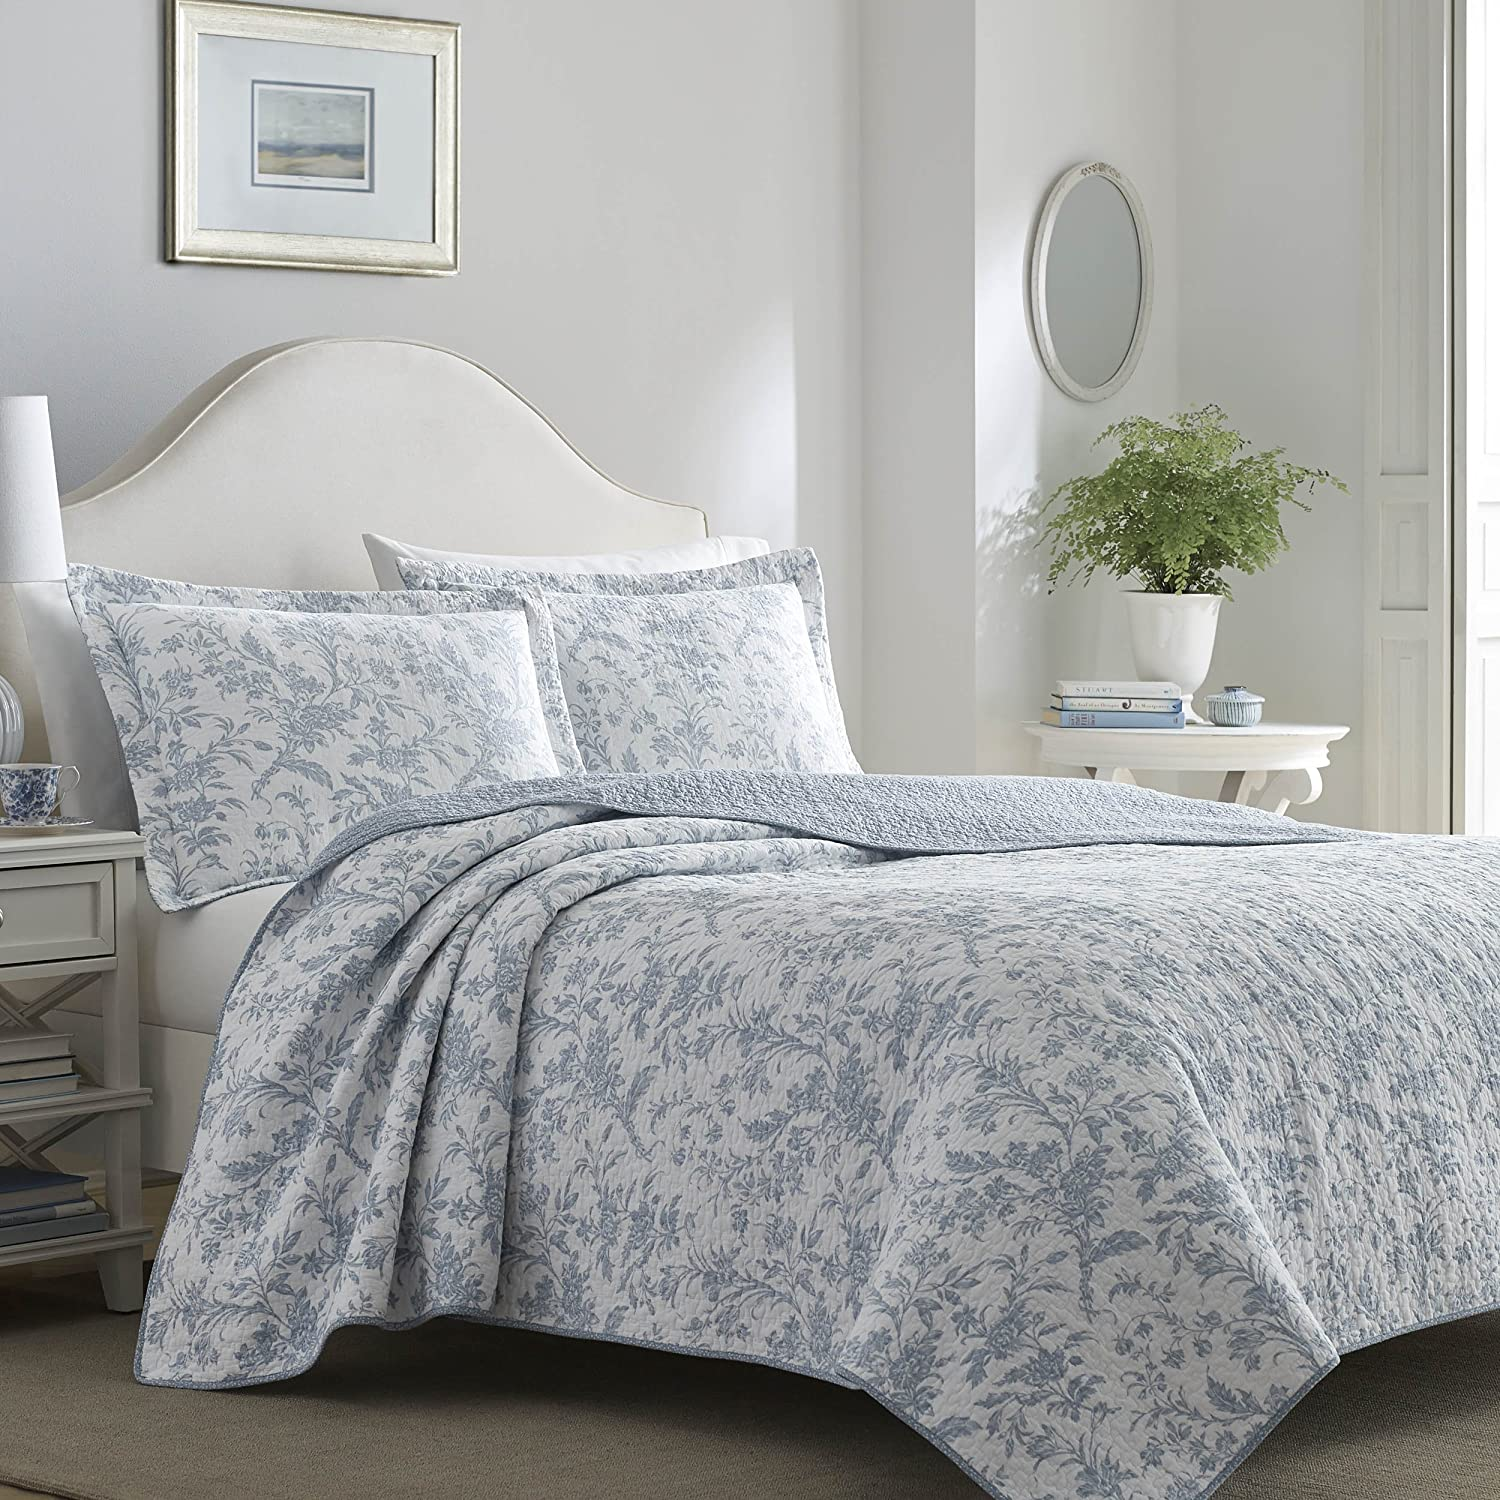 Laura Ashley Amberley Quilt Set, Full/Queen, Spa Blue